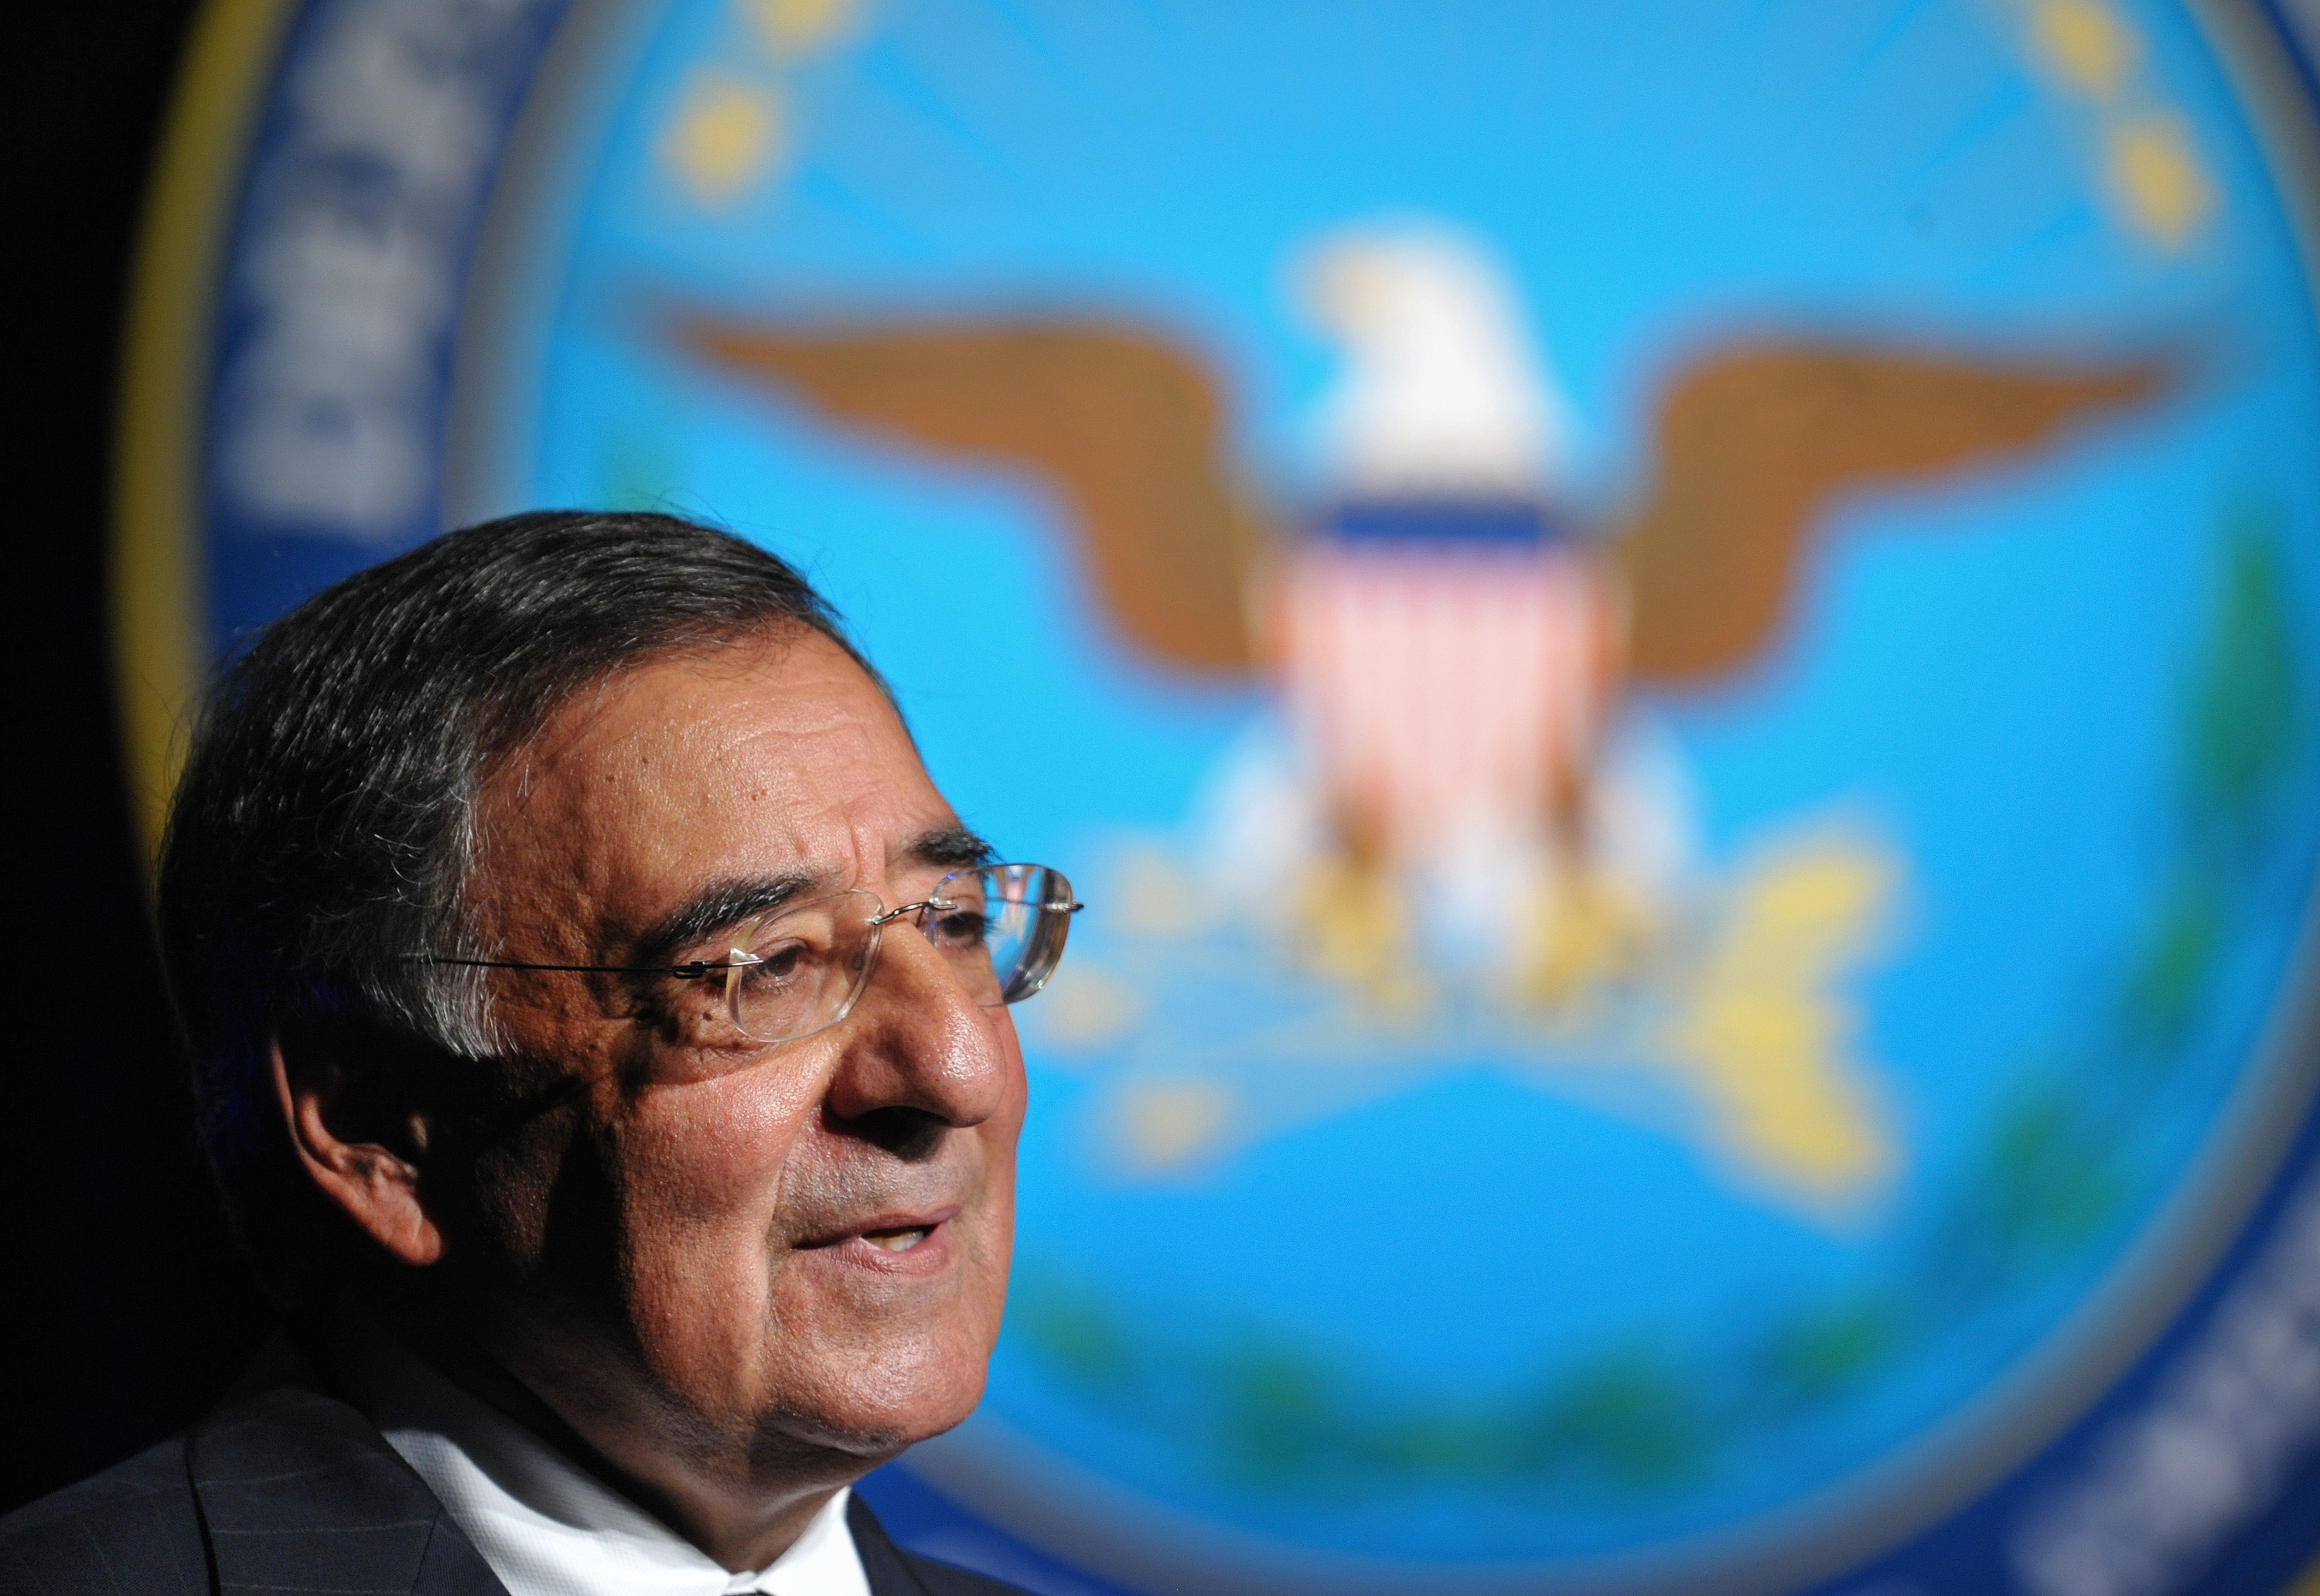 Panetta: Defense cuts would damage U.S. ability to protect the nation